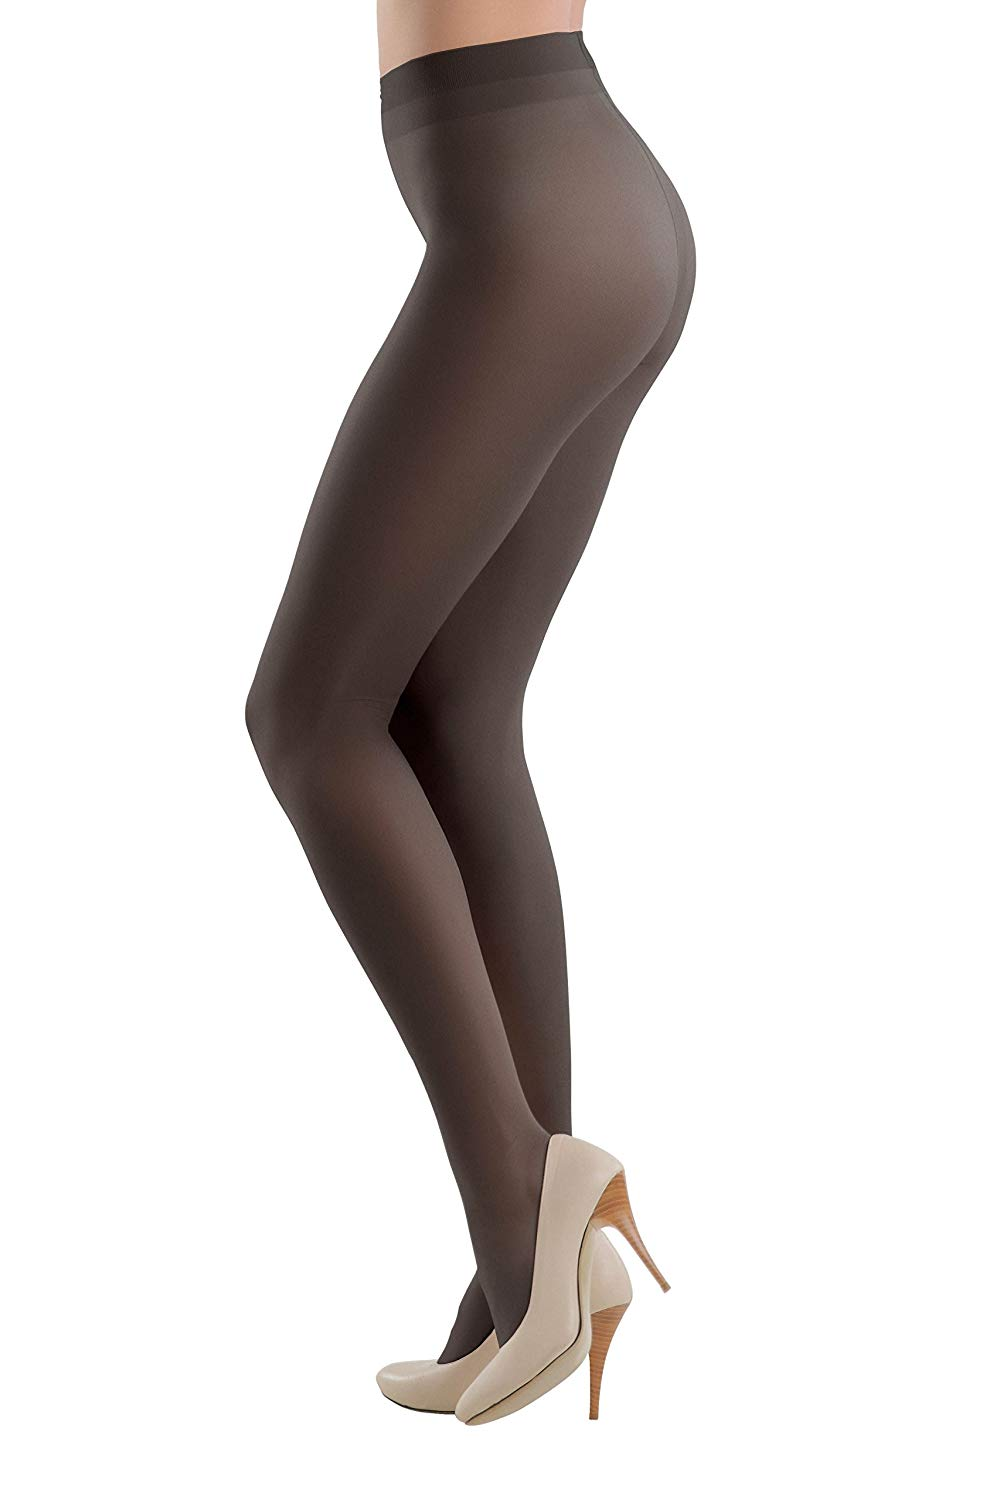 95827b016f5 Conte Women s Semi-Opaque Pantyhose Tights - Prestige 40 Den